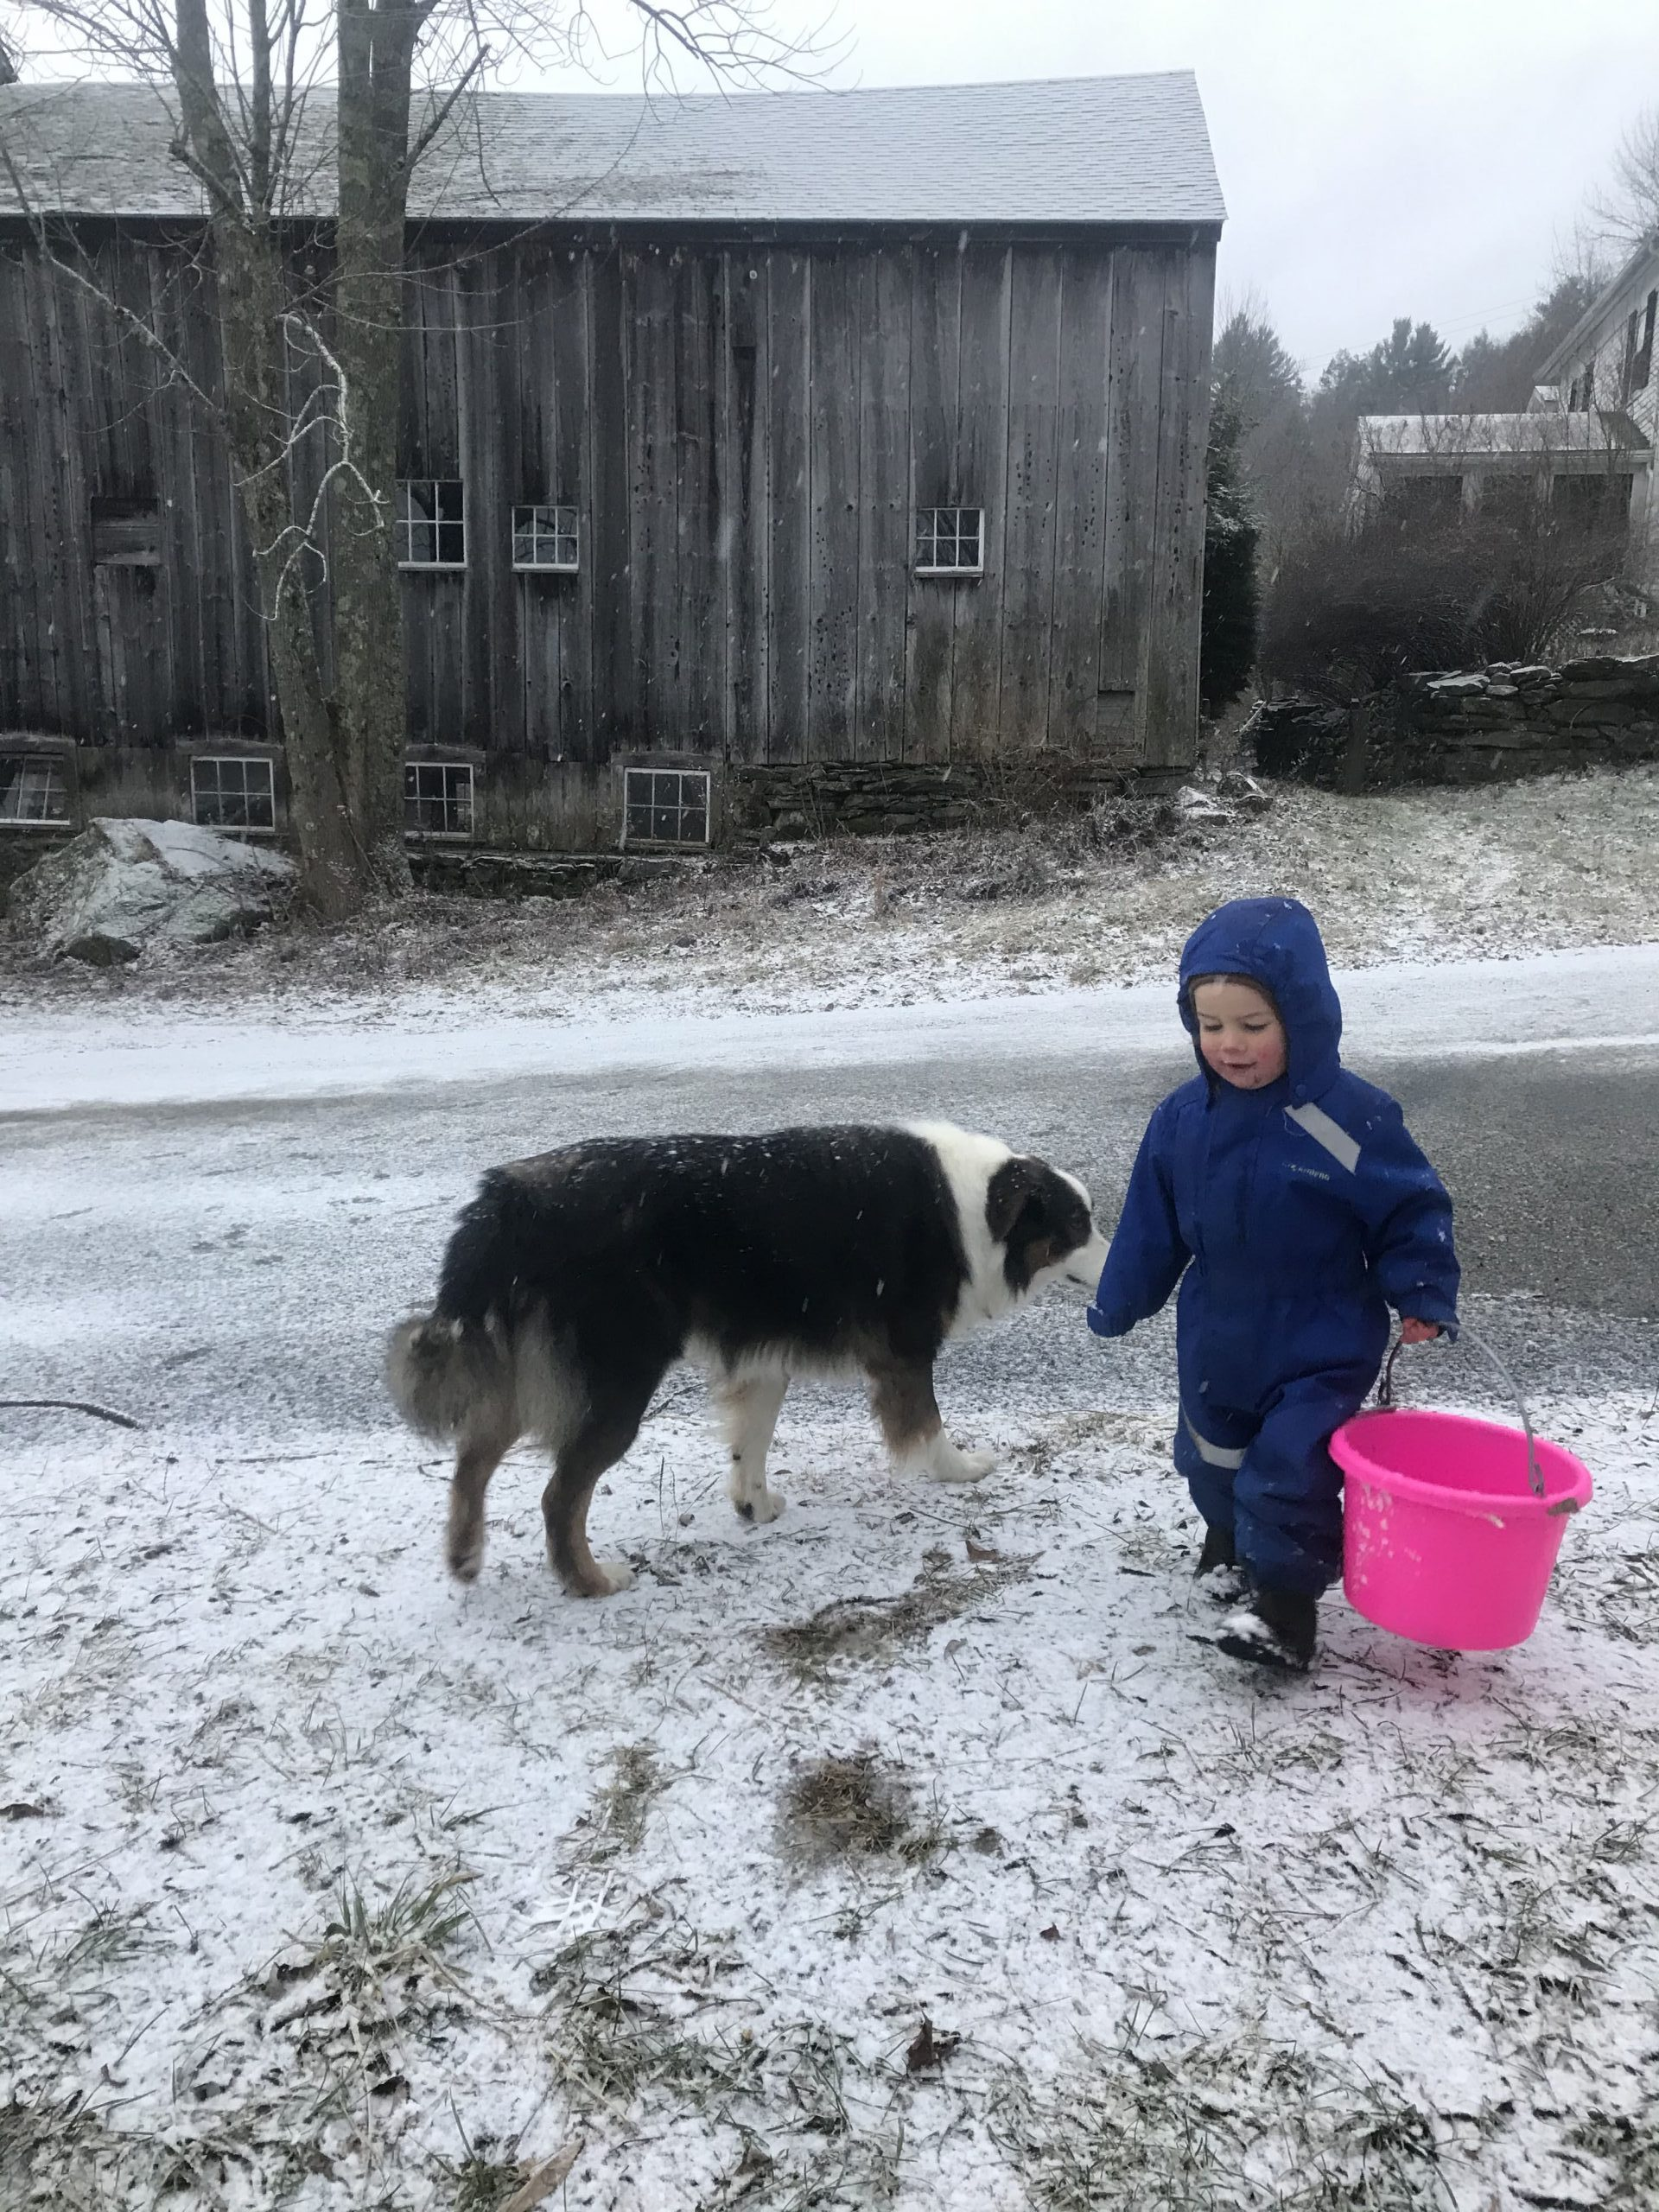 Little boy dressed for the outdoors on winter day with bucket in hand and dog besides him